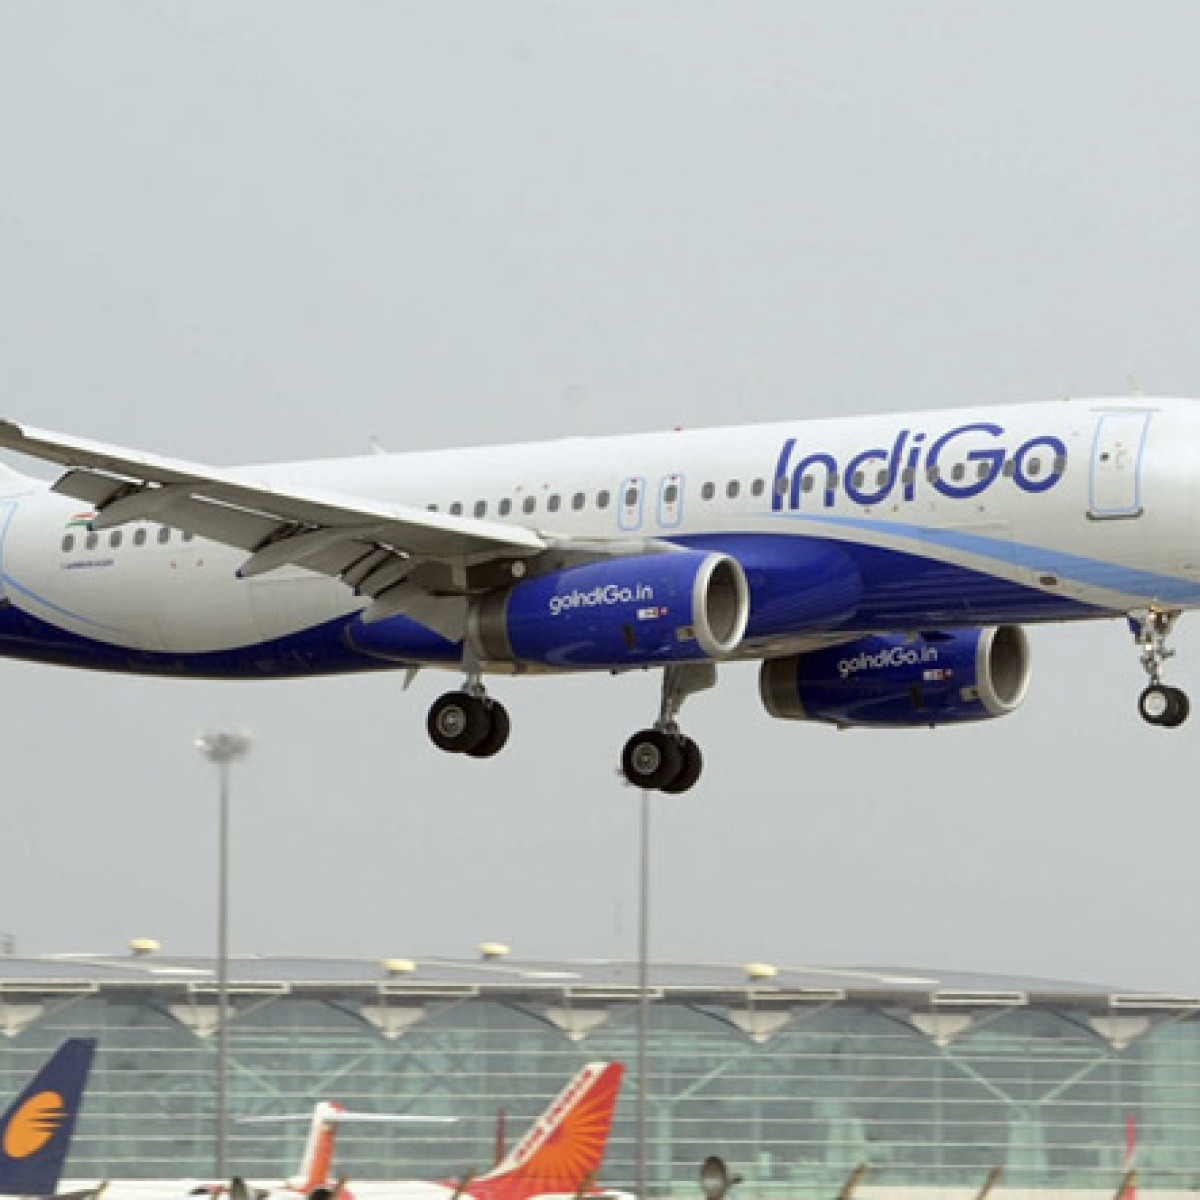 Rival airlines IndiGo, Air Vistara and others engage in hilarious social media banter